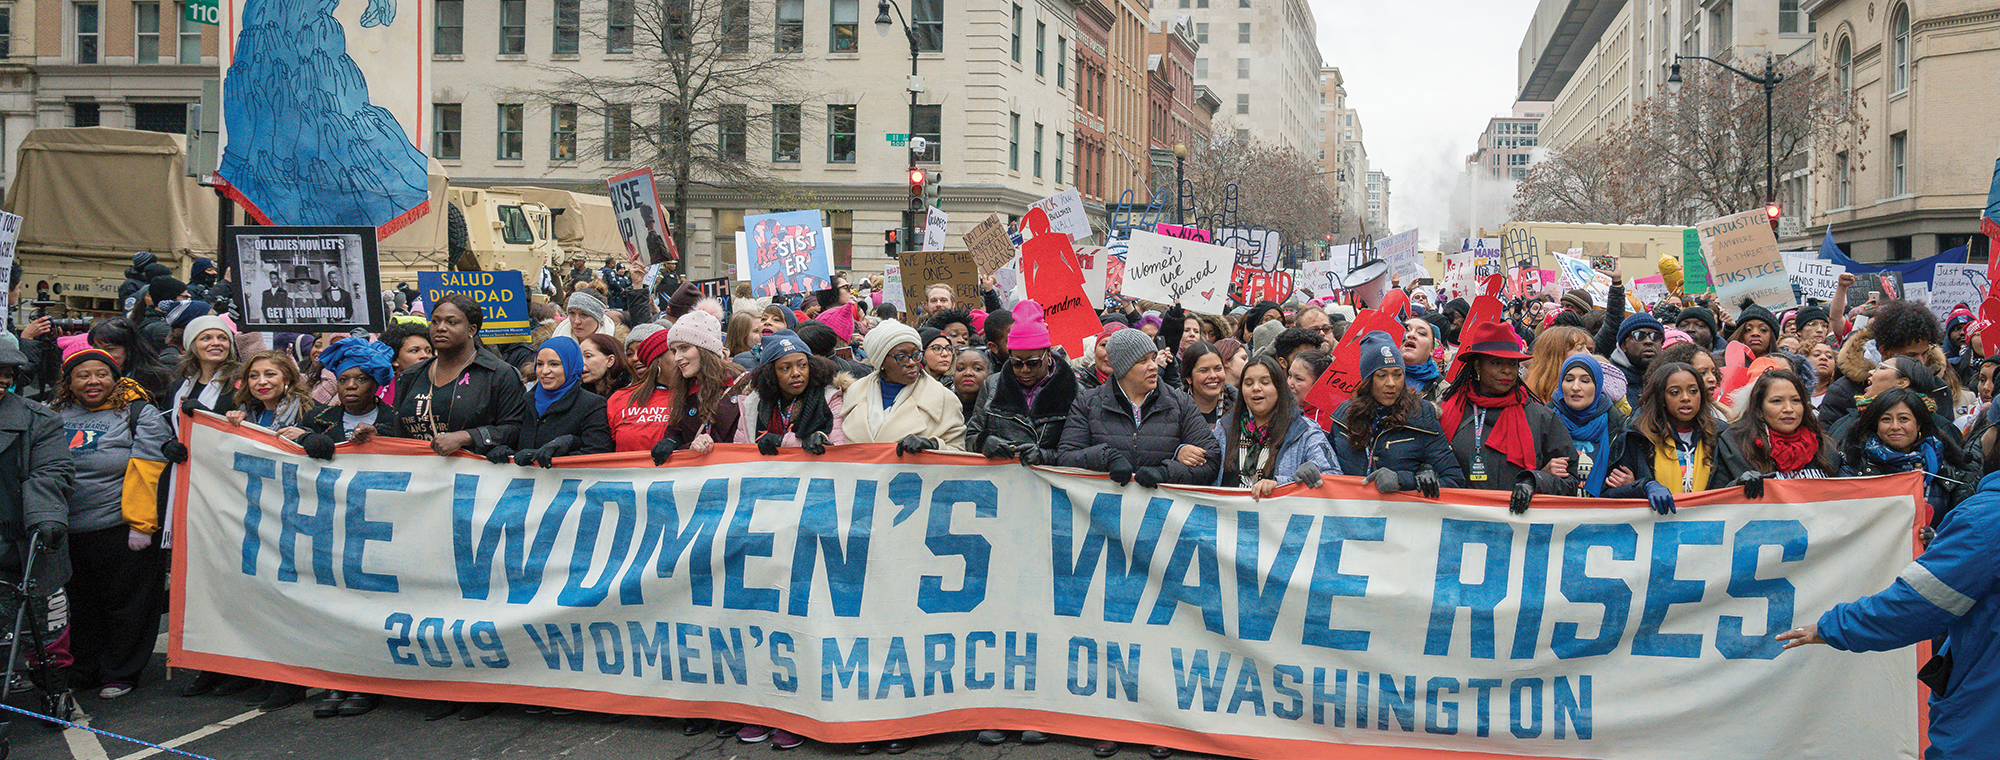 Marchers carrying the 'women's wave' sign at the 2019 Women's March, Washington, DC. Image: Mobilus In Mobili, Flickr